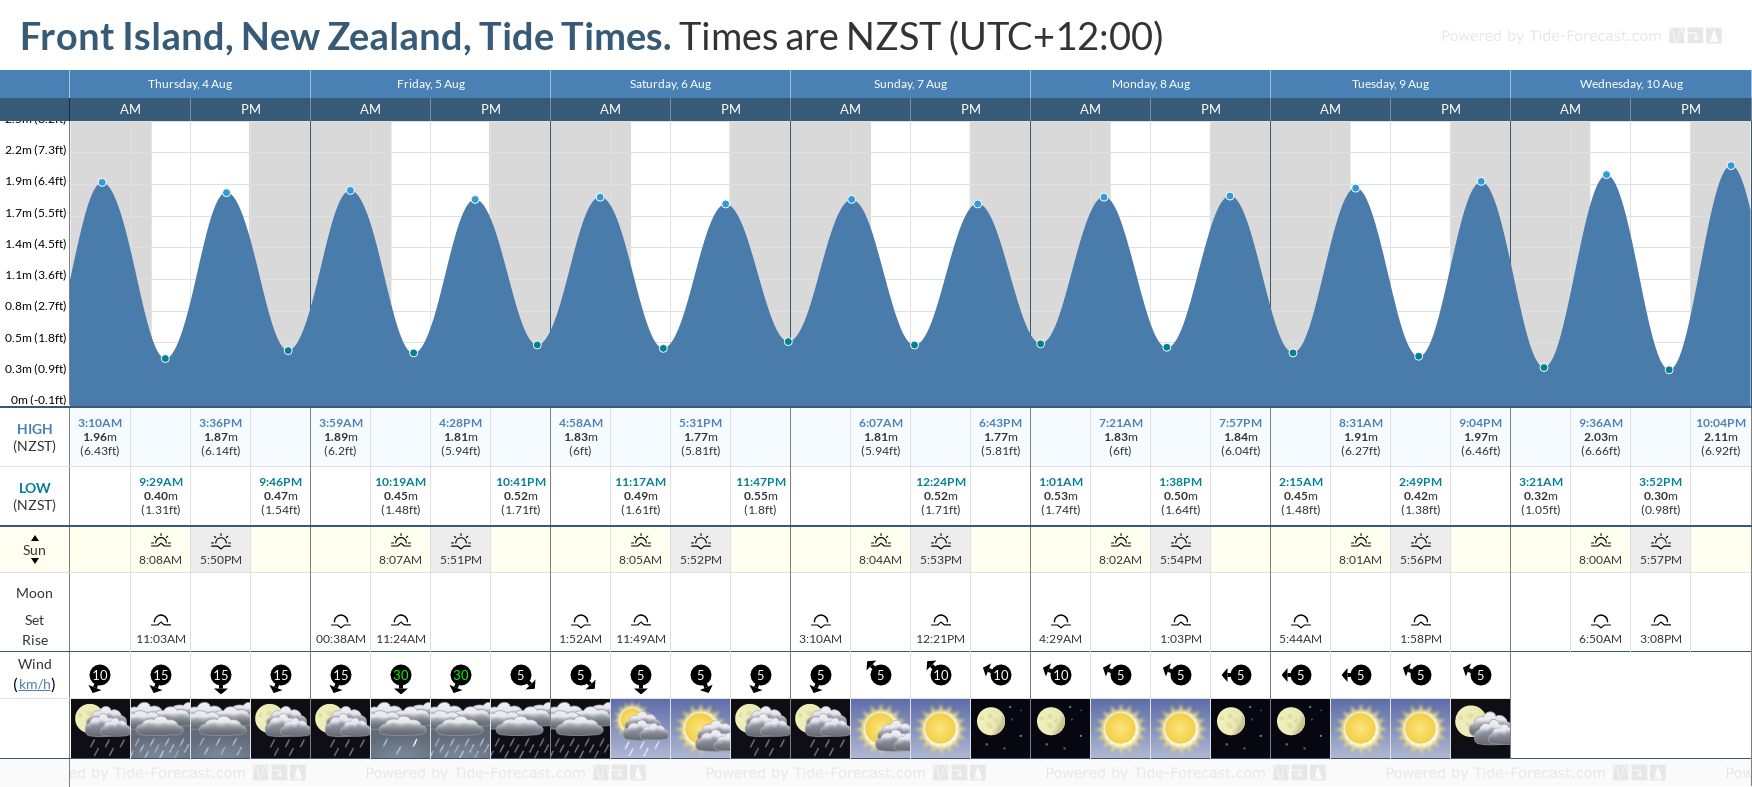 Front Island, New Zealand Tide Chart including high and low tide tide times for the next 7 days